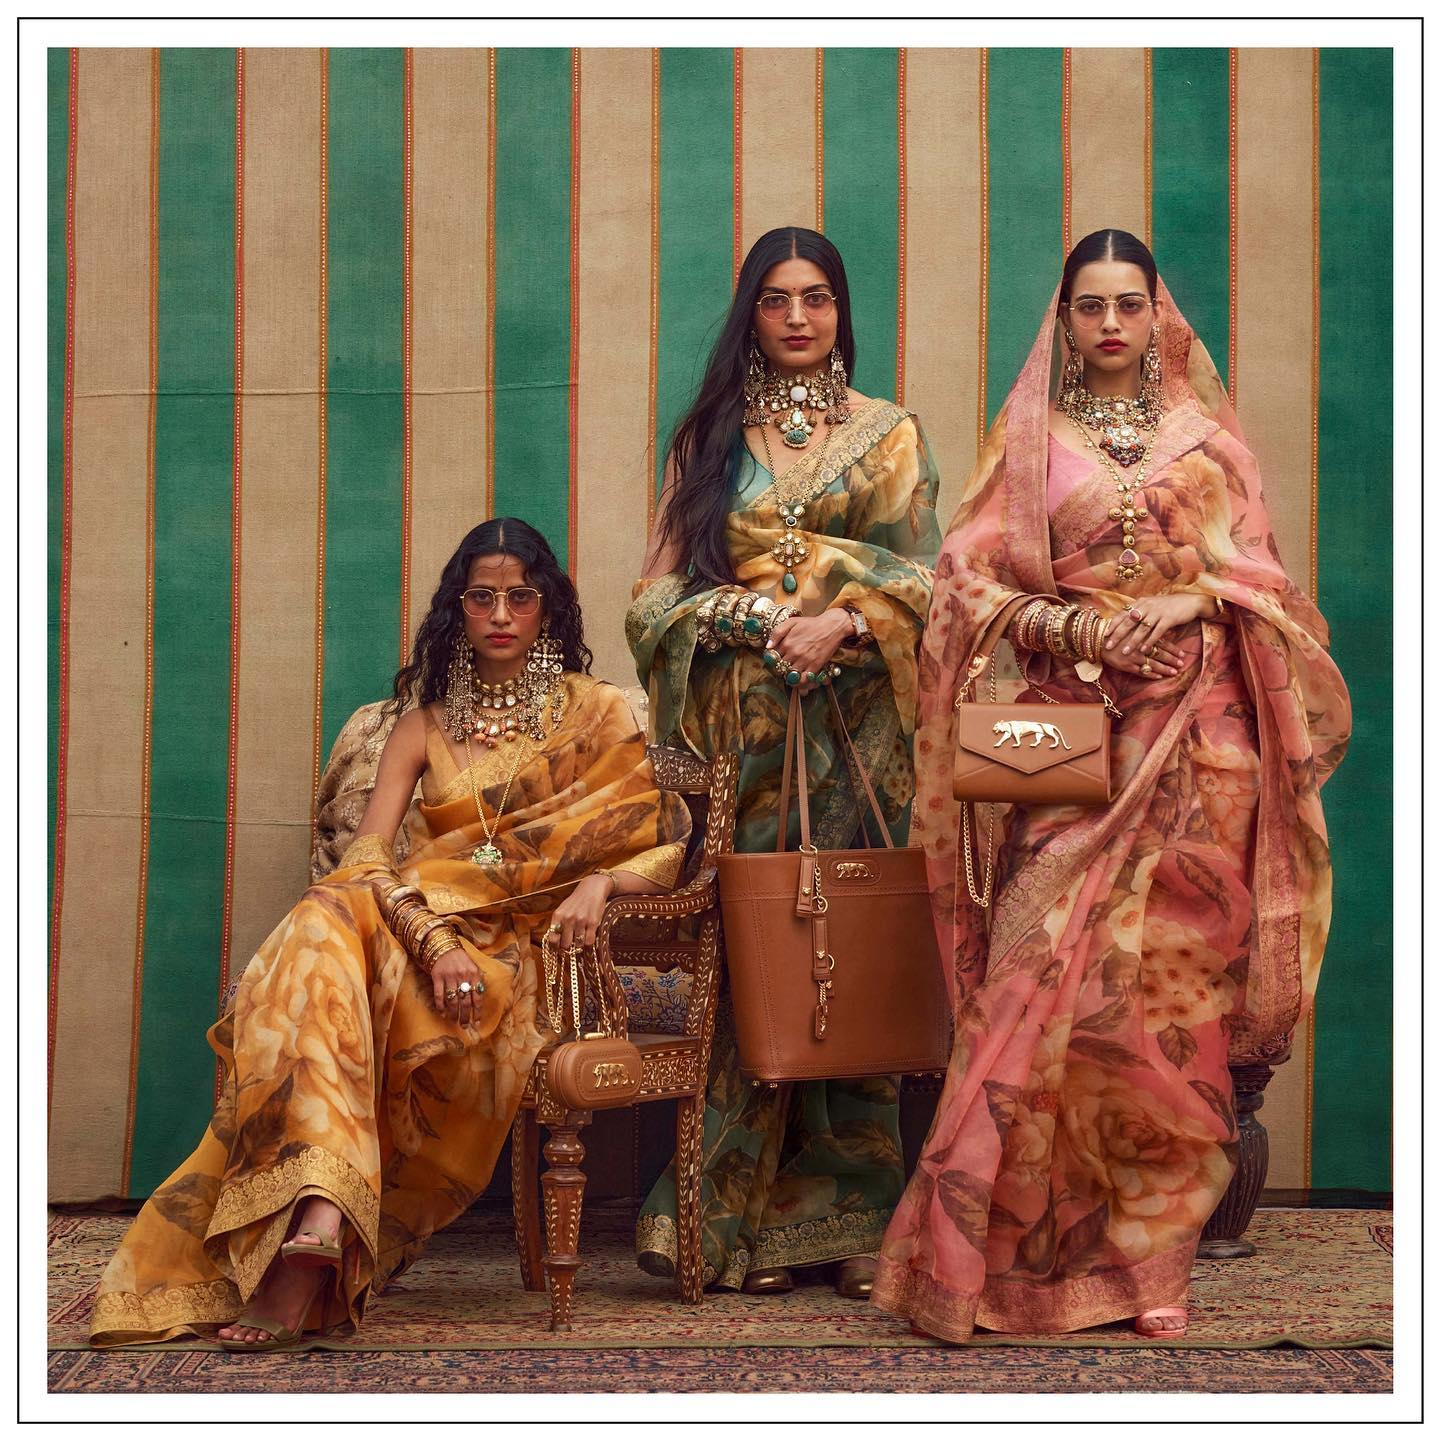 The Sabyasachi 2021 Collection. Sabyasachi floral saree.  For all product related queries please email at customerservice@sabyasachi.com or contact retail stores directly. 2021-09-26